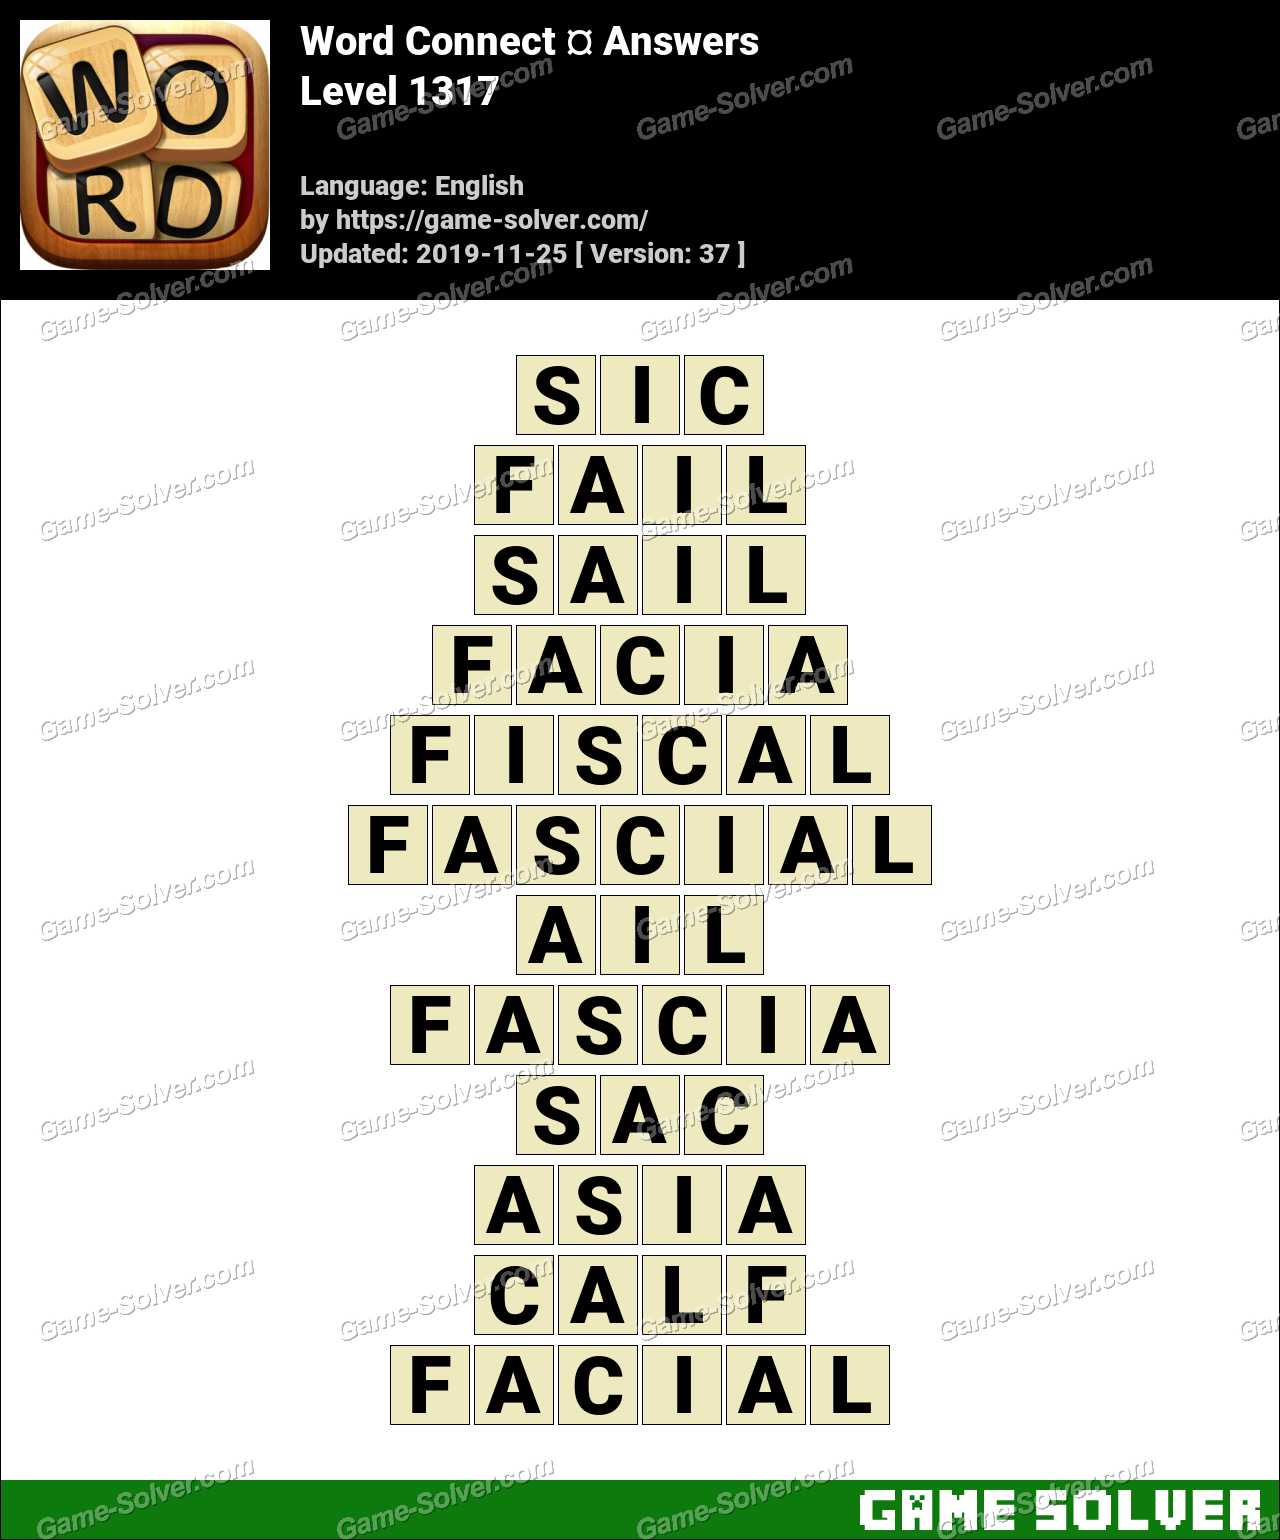 Word Connect Level 1317 Answers